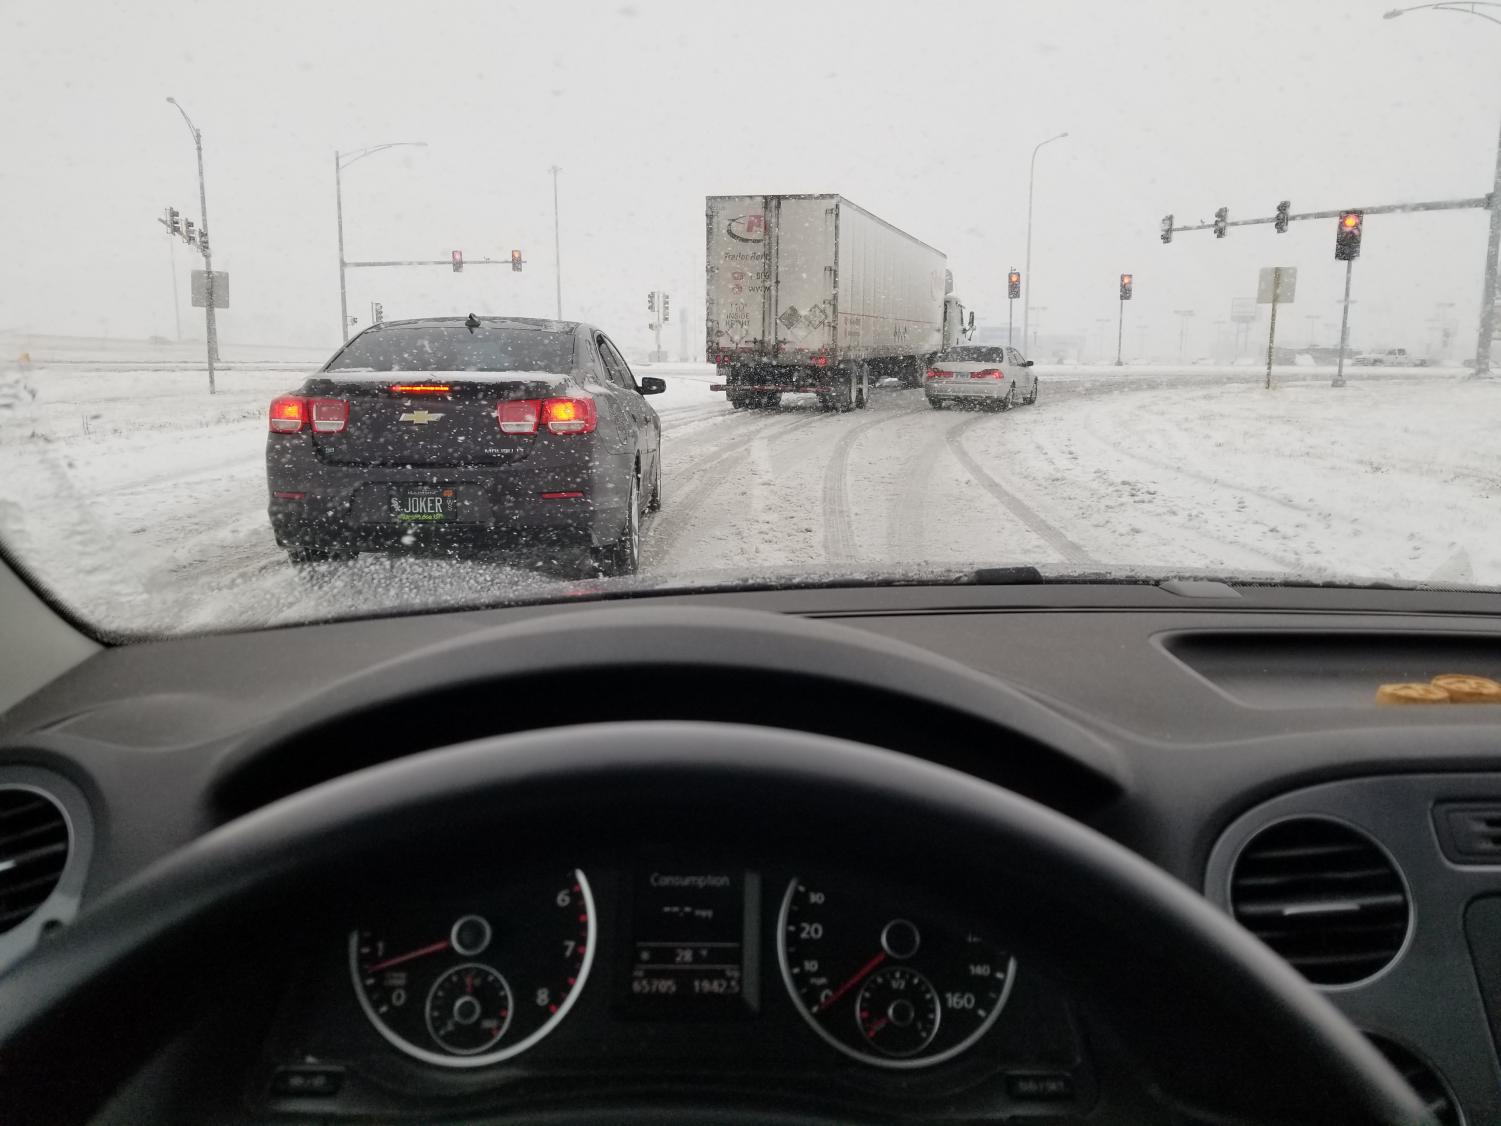 Cars drive along snow-covered roads during the snowstorm that battered the Midwest this past weekend. Columnist Noah writes that while snow in the Midwest is nothing new, some people still tend to jump at the first sign of potentially bad weather.